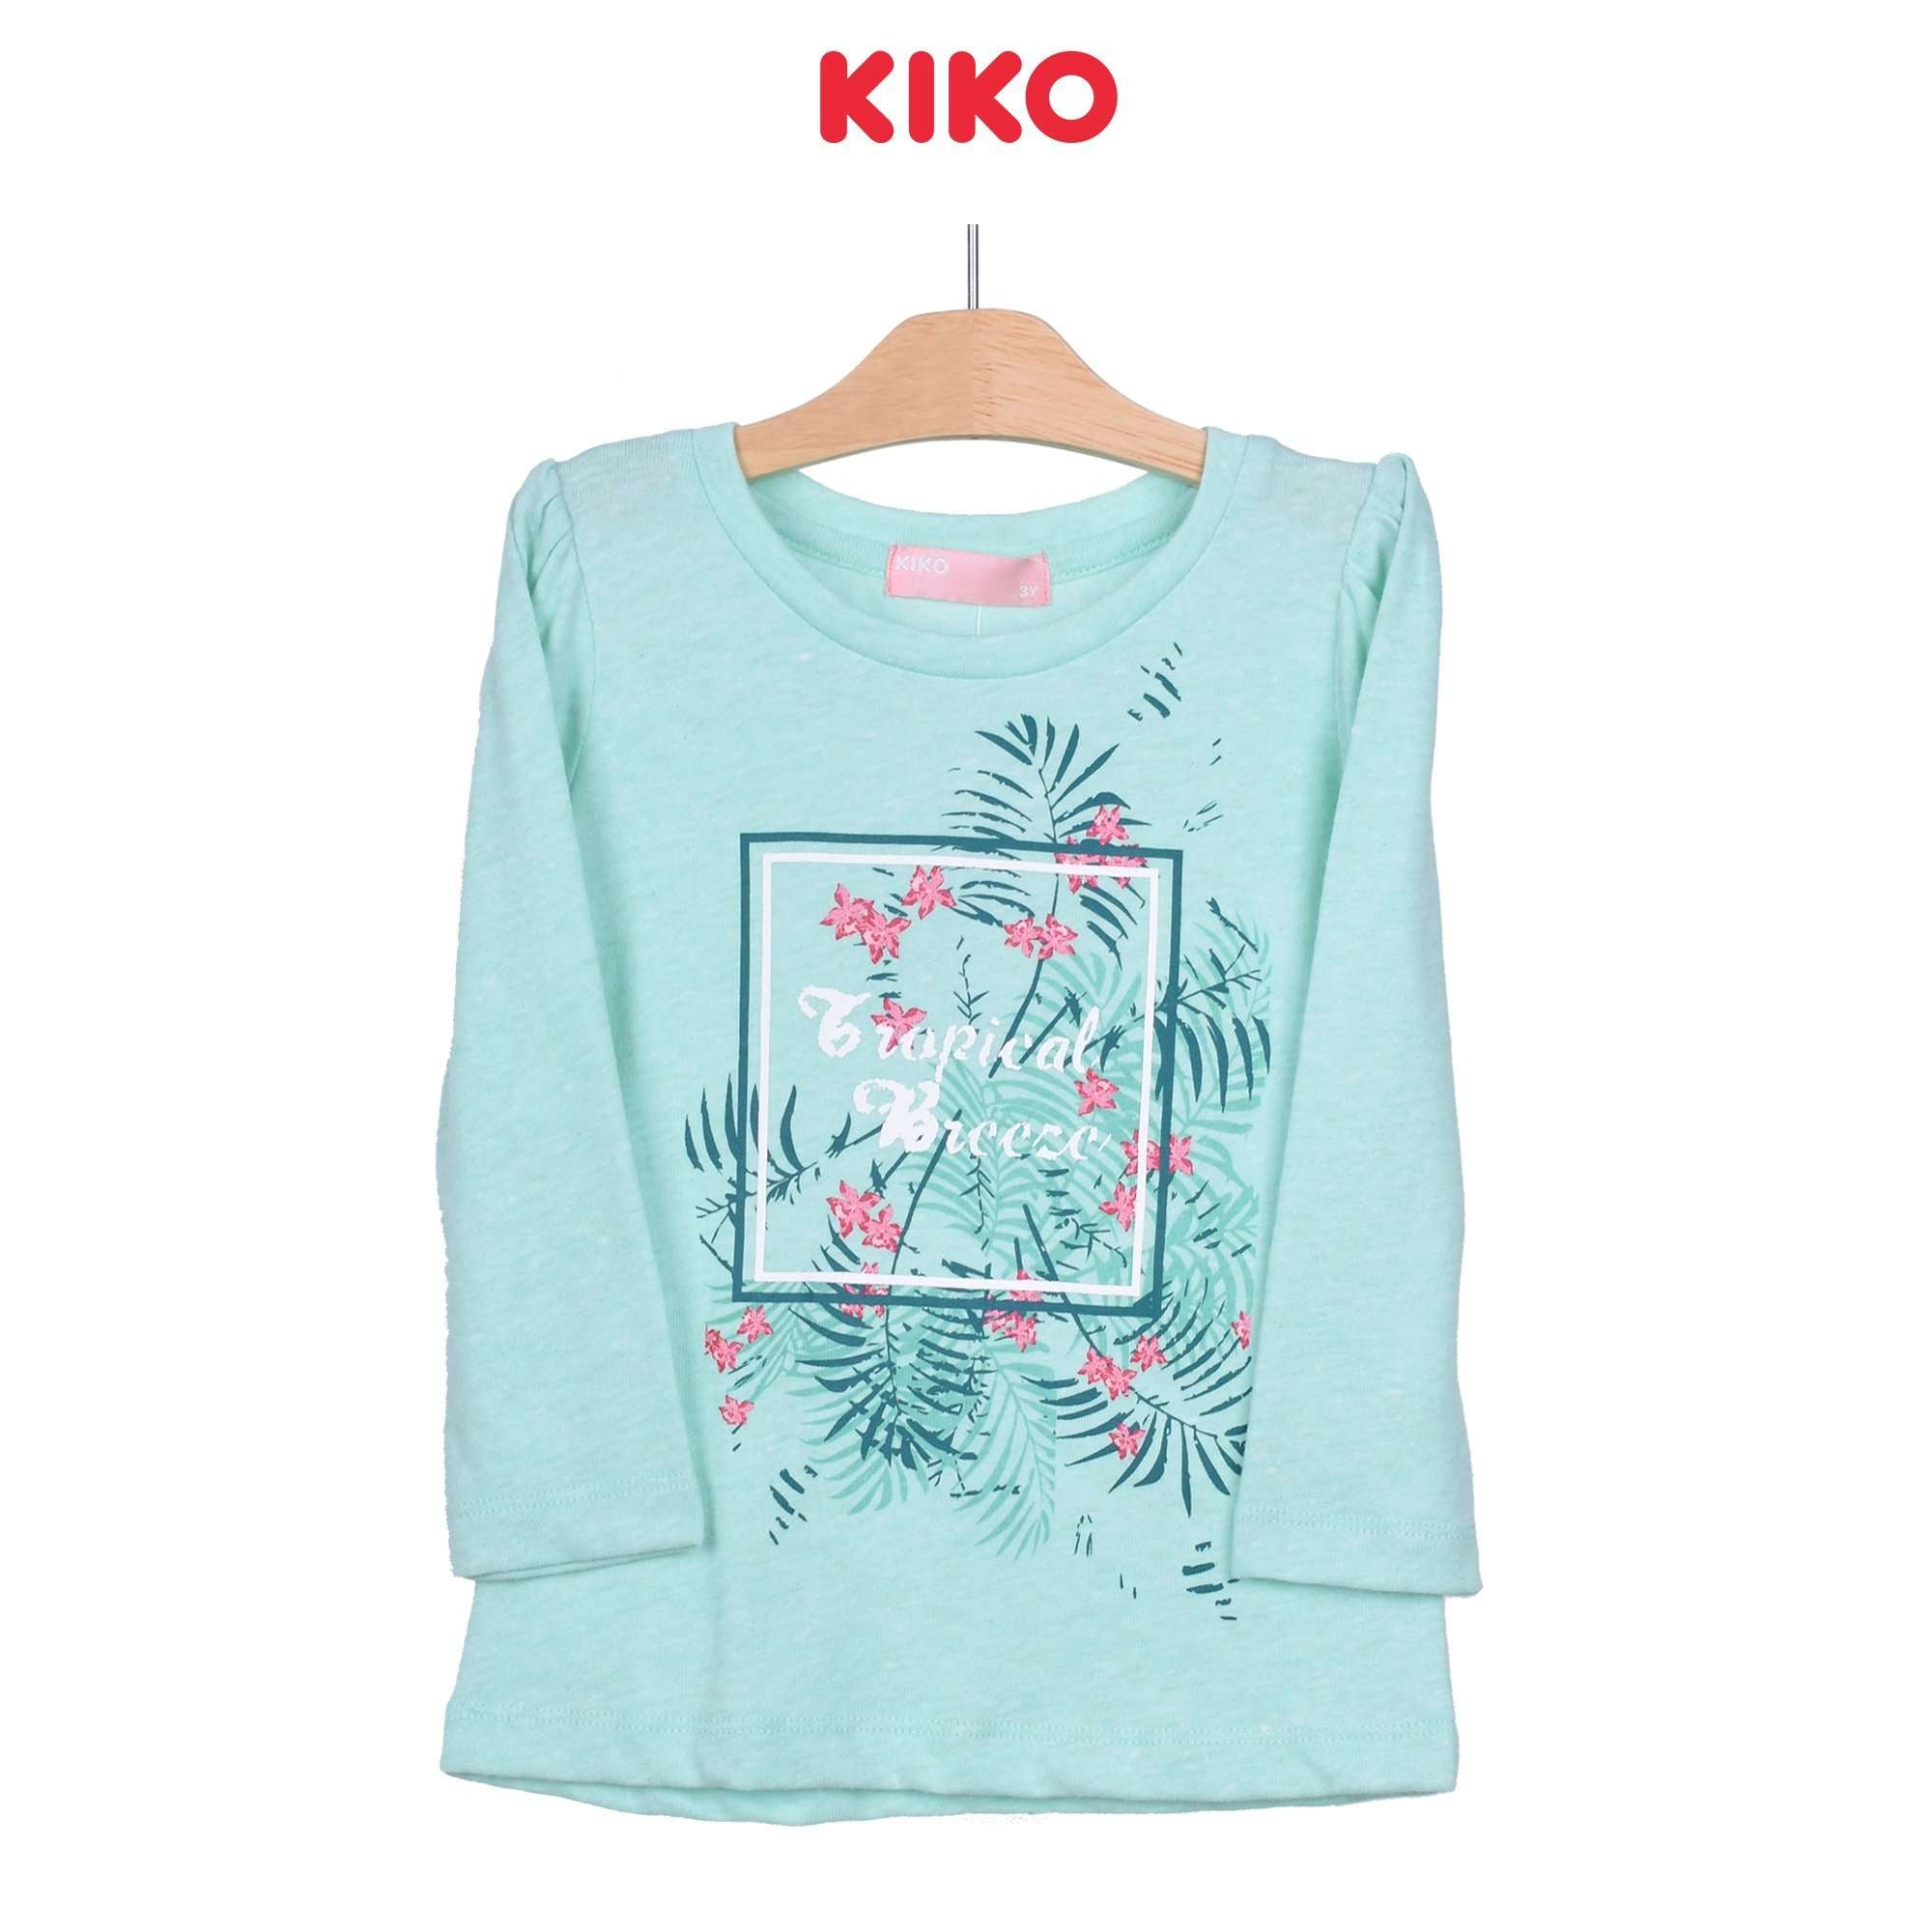 KIKO Girl Round Neck Long Sleeve Tee - Green 126073-132 : Buy KIKO online at CMG.MY